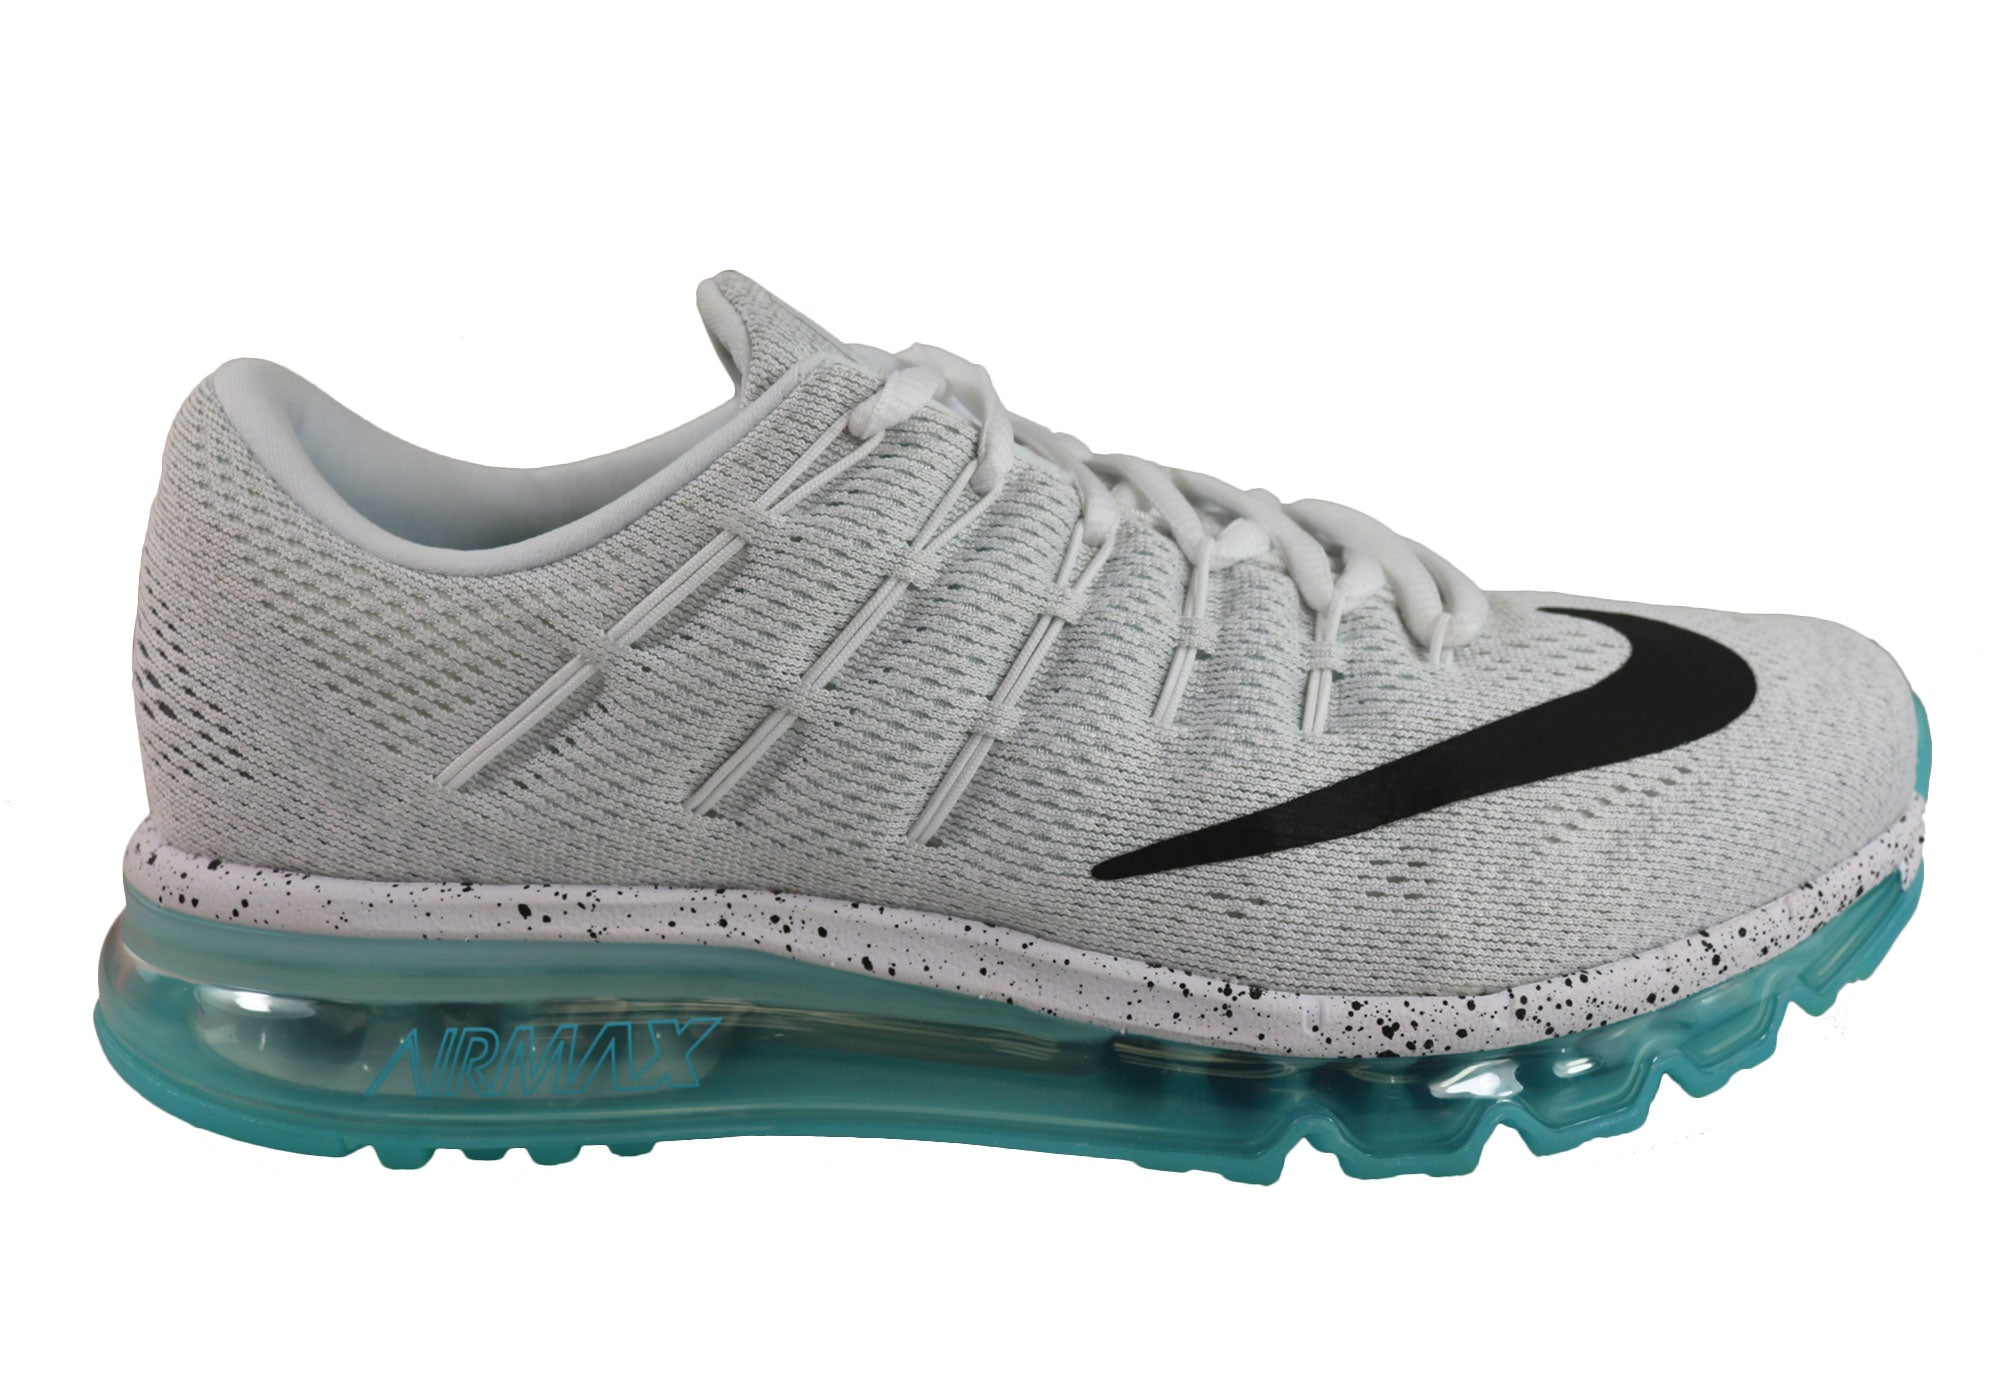 3731360e8a22 Nike Air Max 2016 Prm Mens Premium Cushioned Sport Shoes